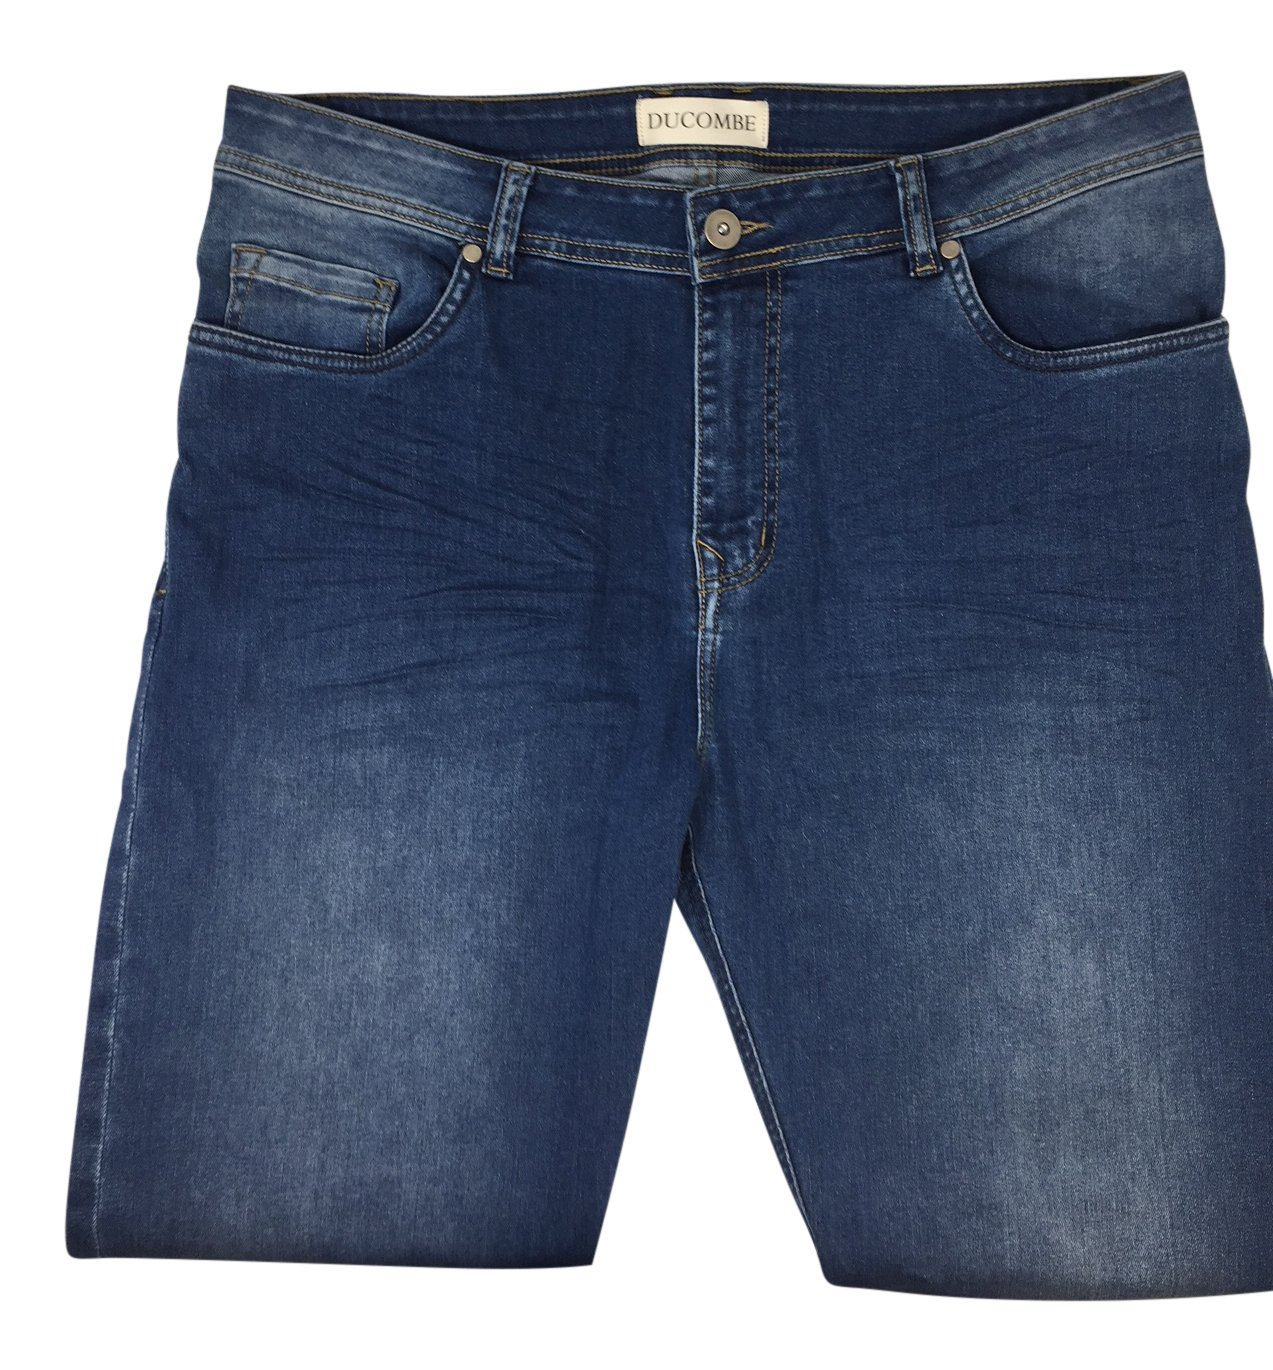 """29 inches Inseam Jeans - A Classic 5 Pocket Straight Fit Jean For Men Under 5'6"""" - Mid Blue Mens Jeans 30x29"""